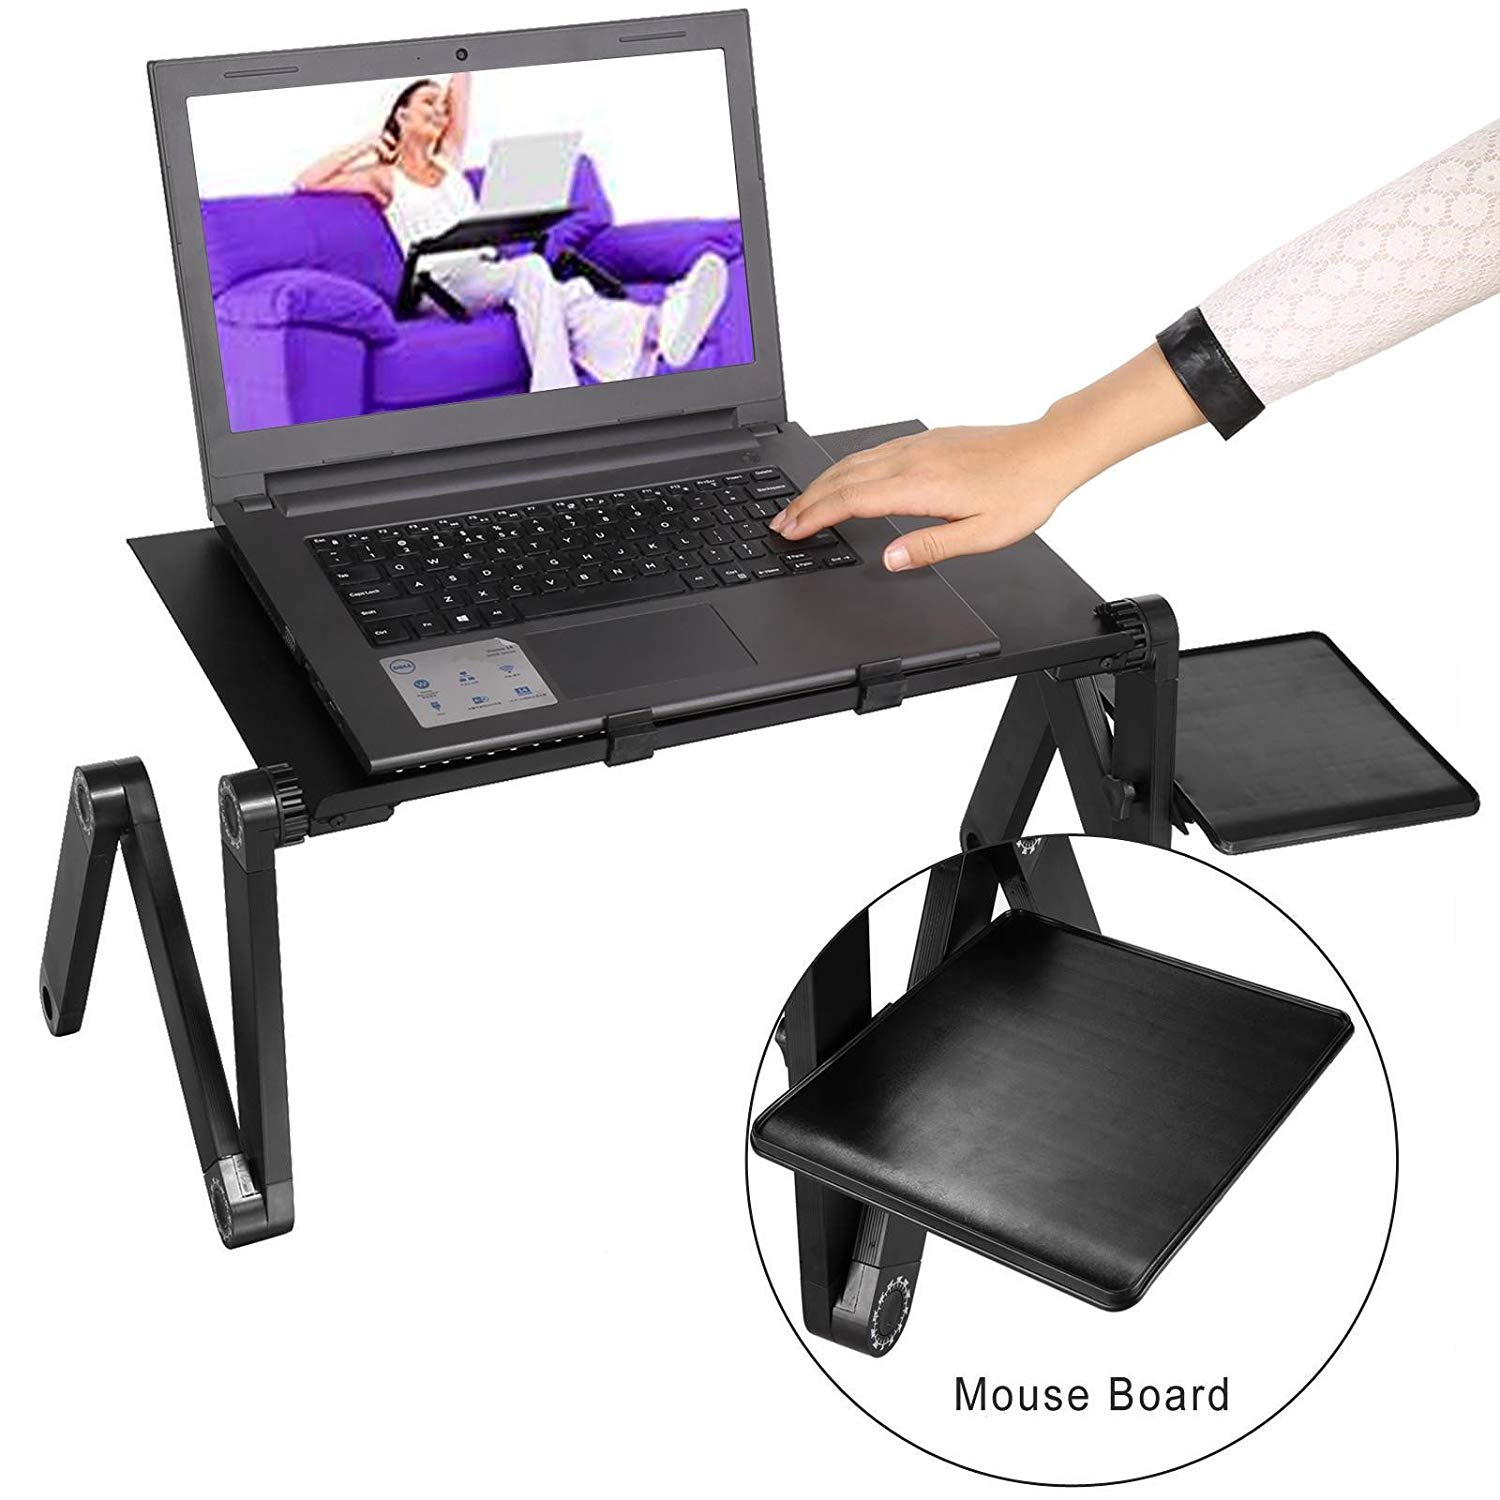 Creine Portable 360° Adjustable Aluminum Laptop Table, Light Weight Ergonomic Design Folding Laptop Desk Computer Stand Bed Lap Tray Stand with Removable Mouse Pad (US STOCK)